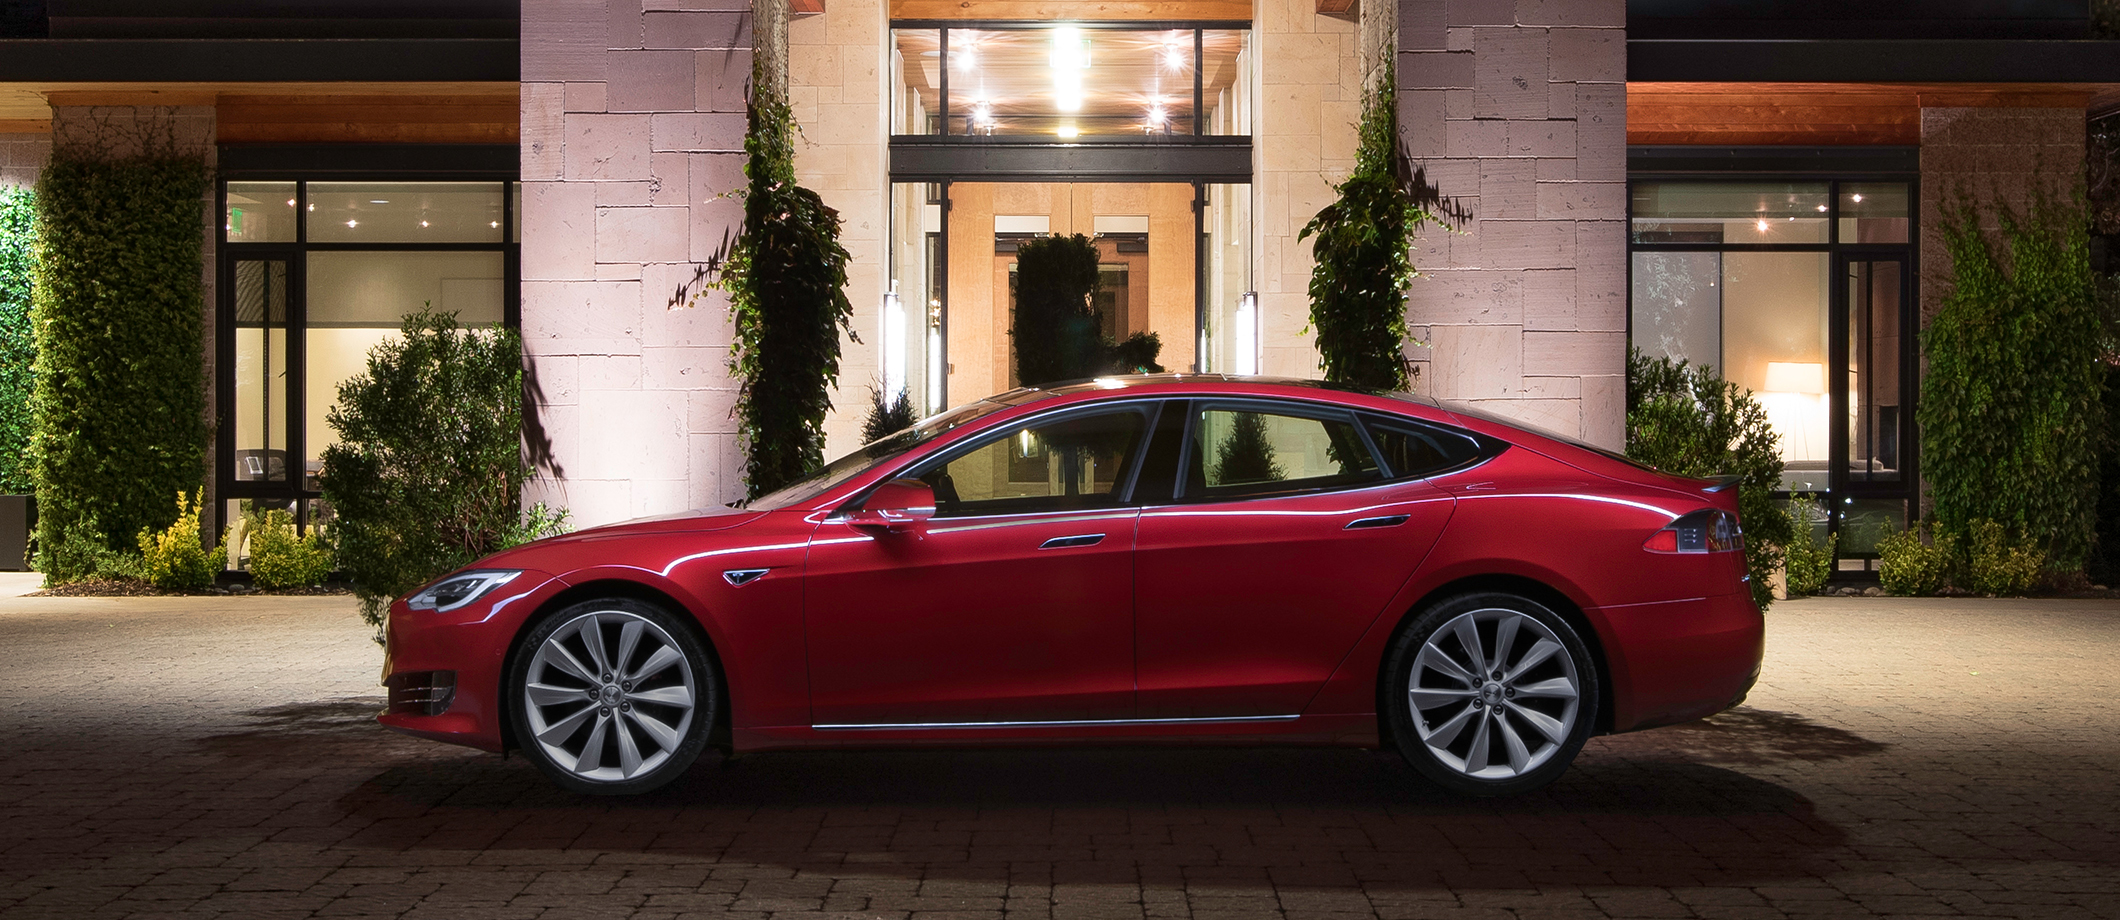 Tesla autopilot update rolls out to HW2 cars, may activate by end of week